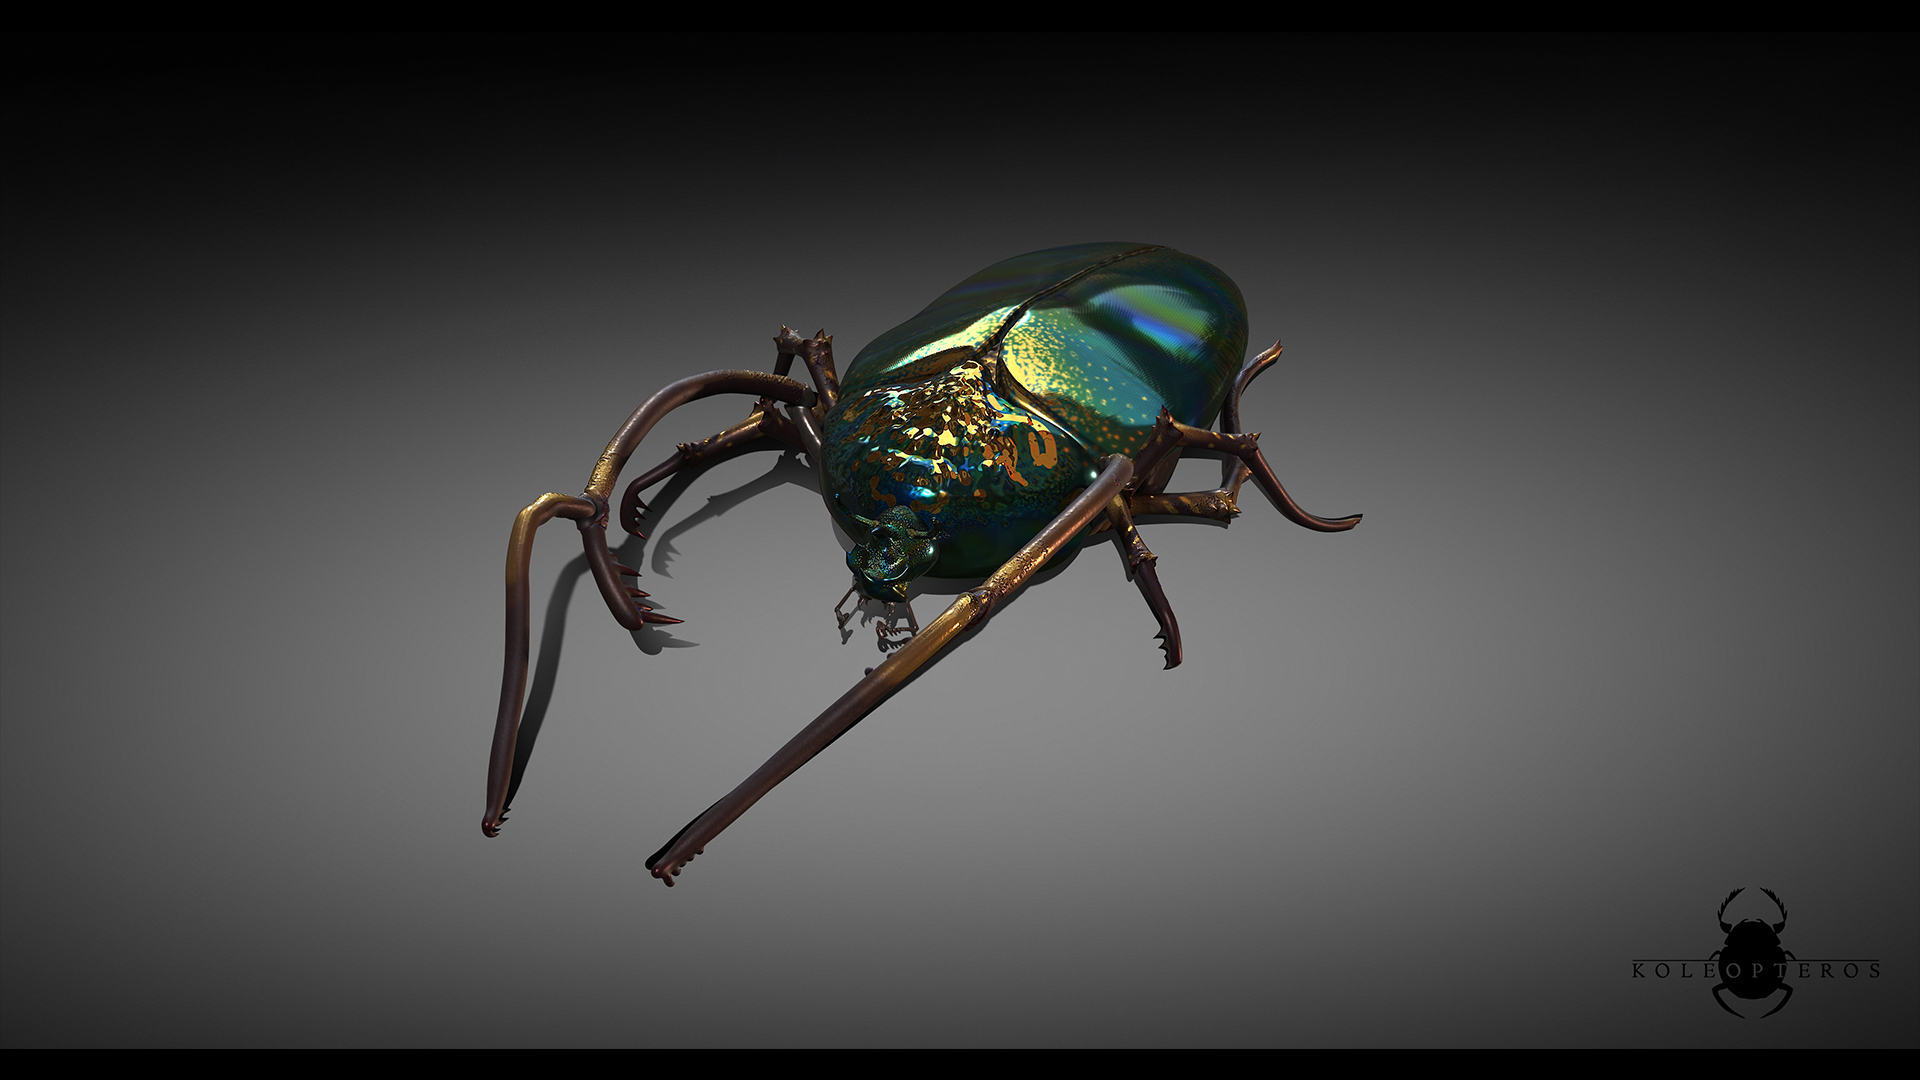 KT_insect_Broodmother_Jamescombridge1920x1080.jpg